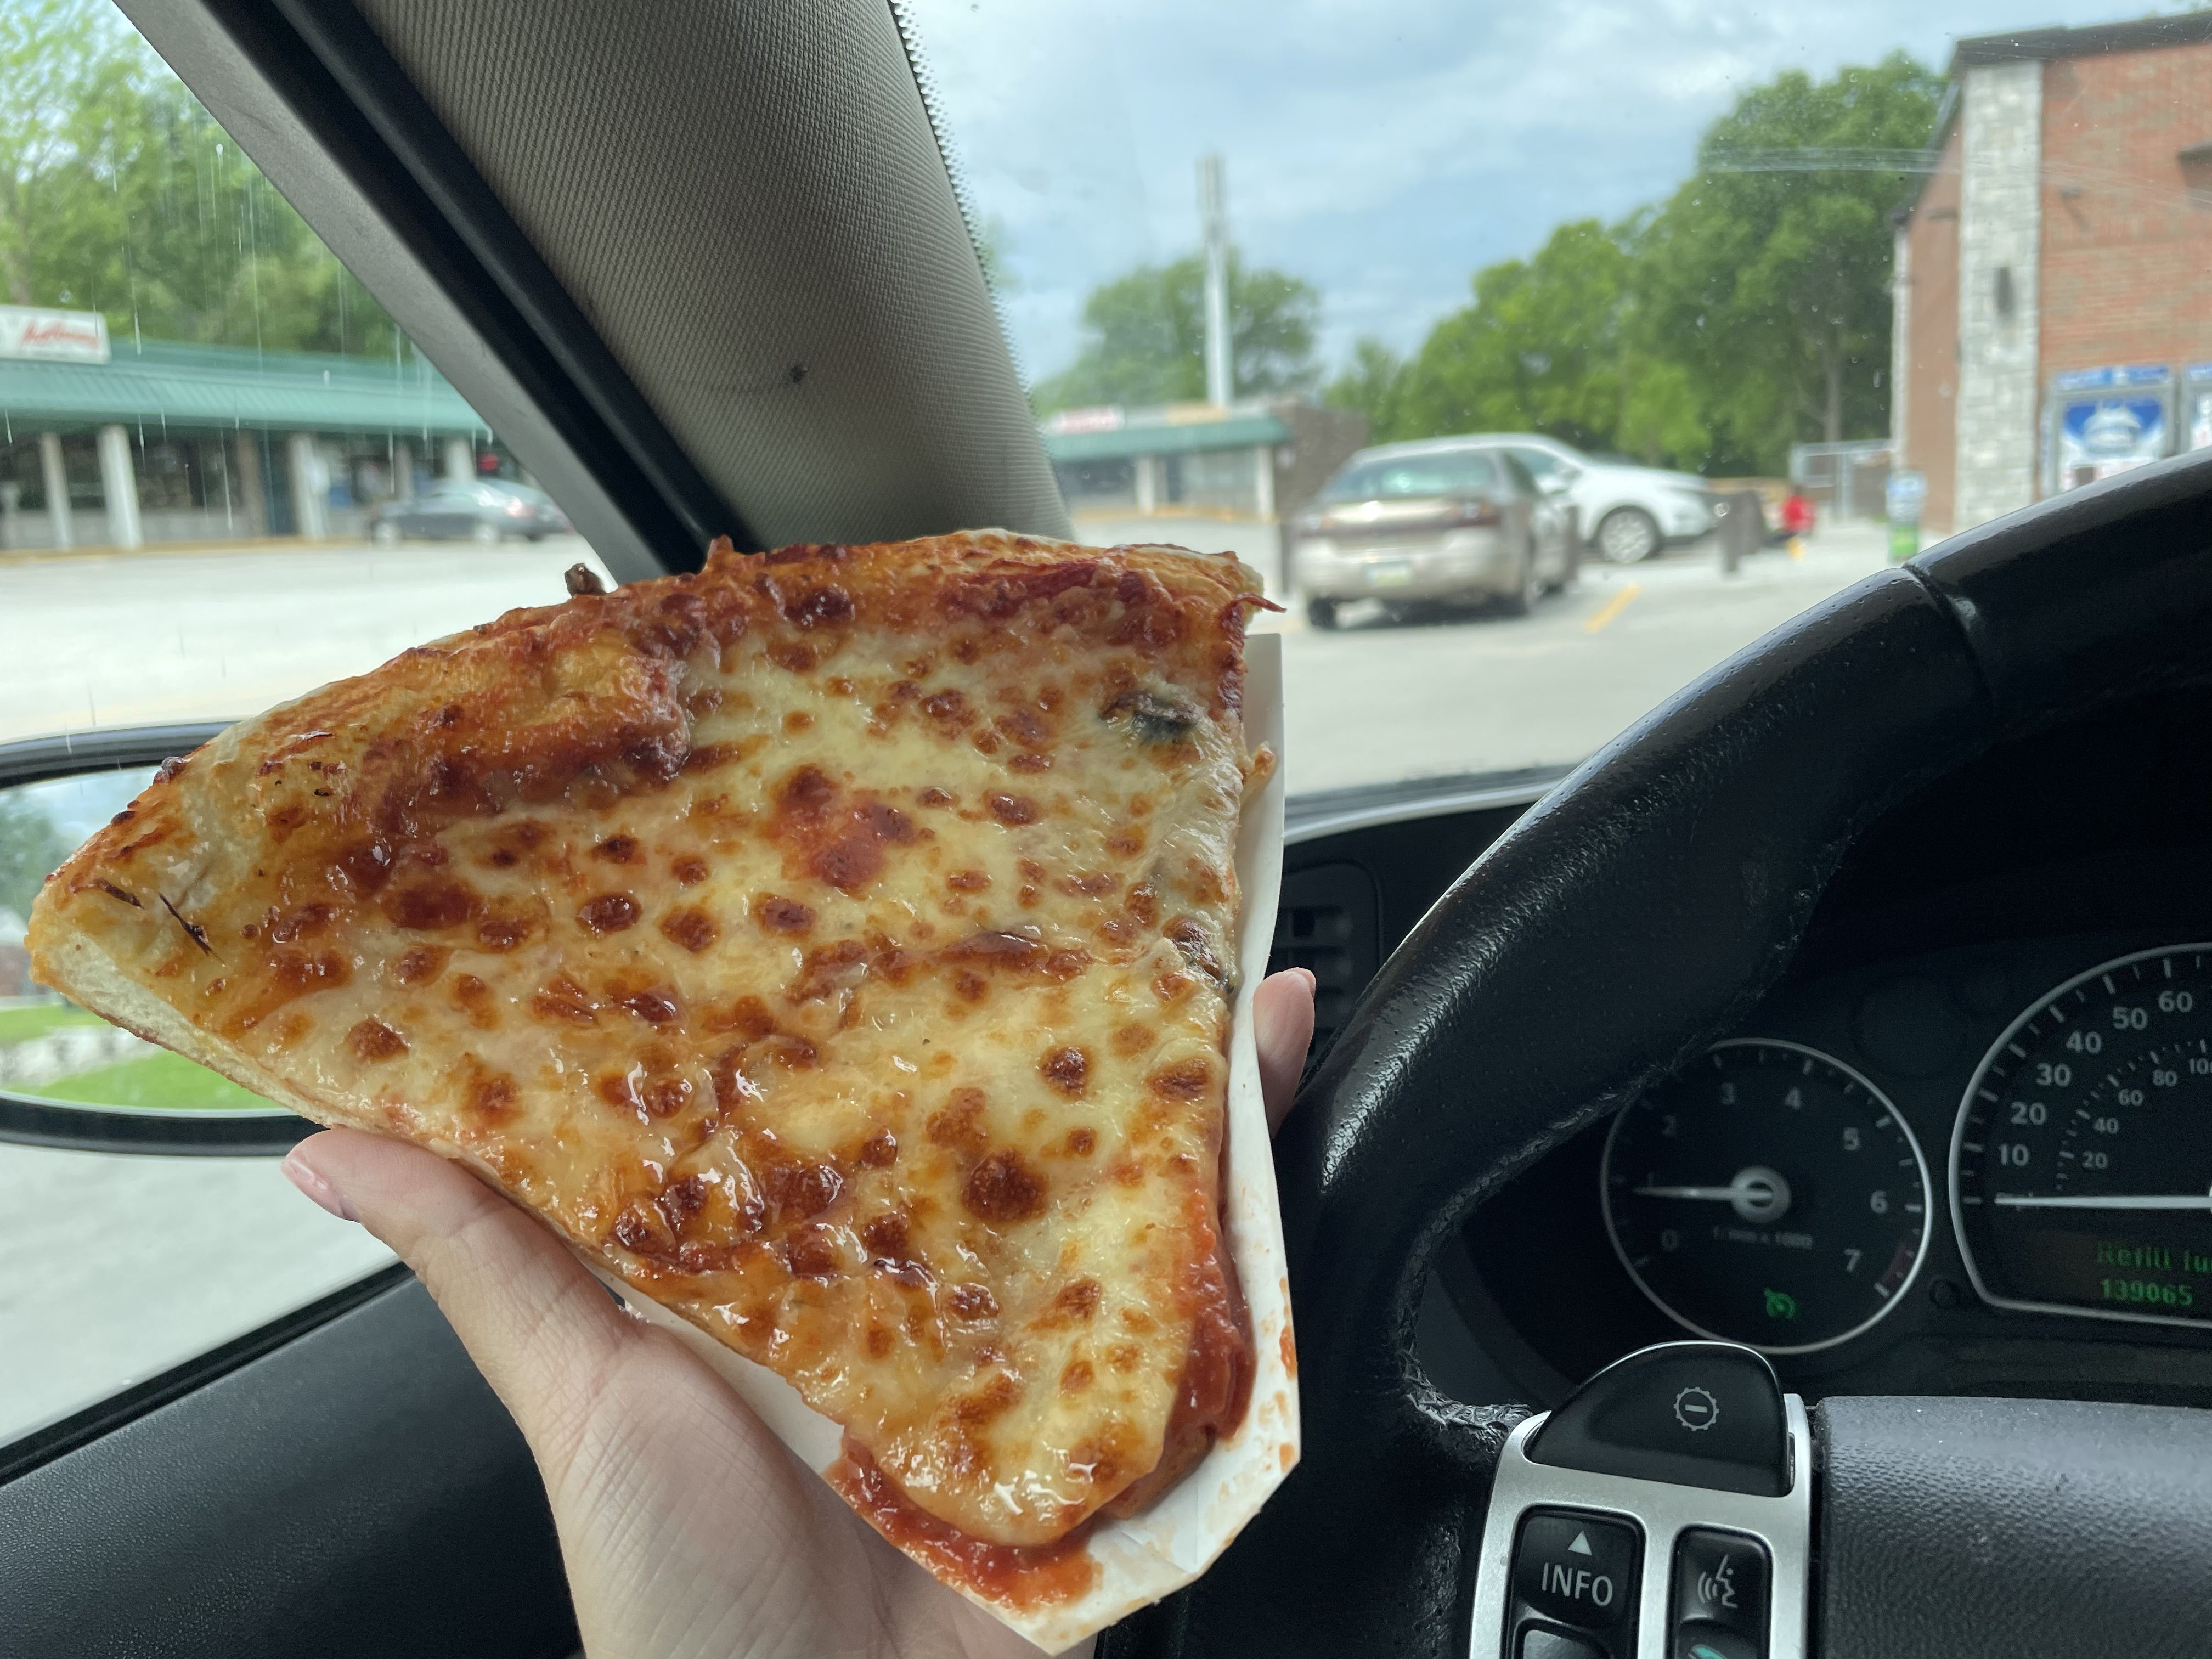 A slice of Casey's pizza.